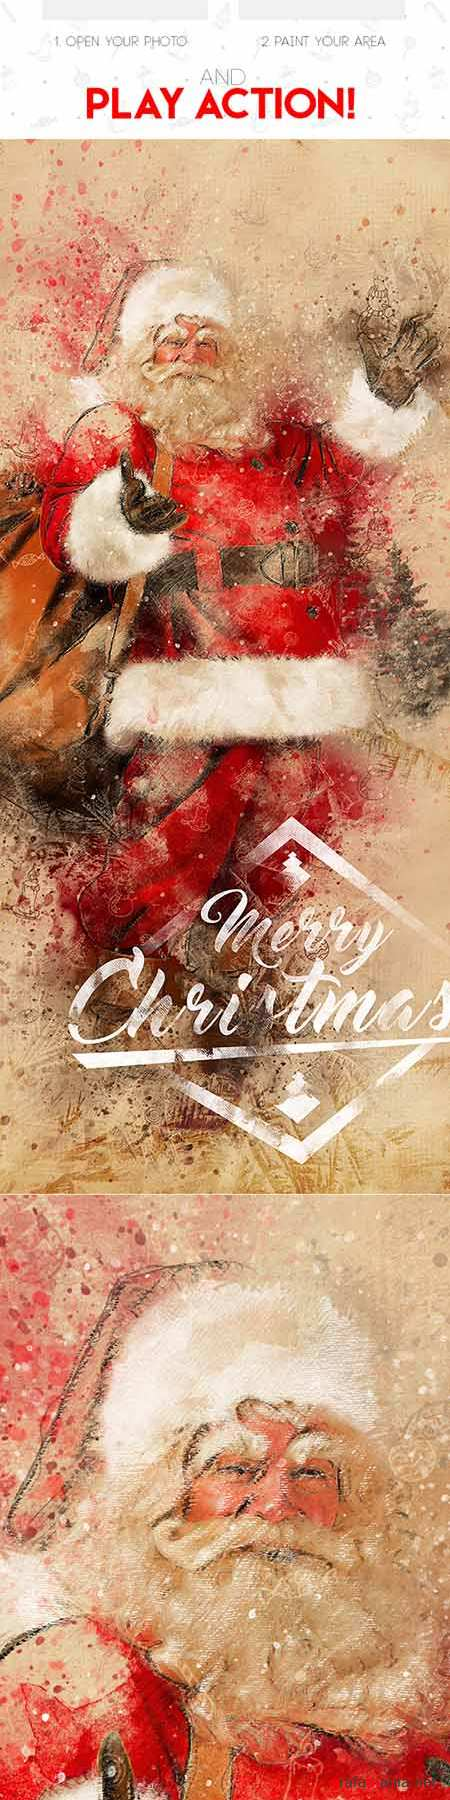 GraphicRiver - Christmas 3 Photoshop Action 19160464